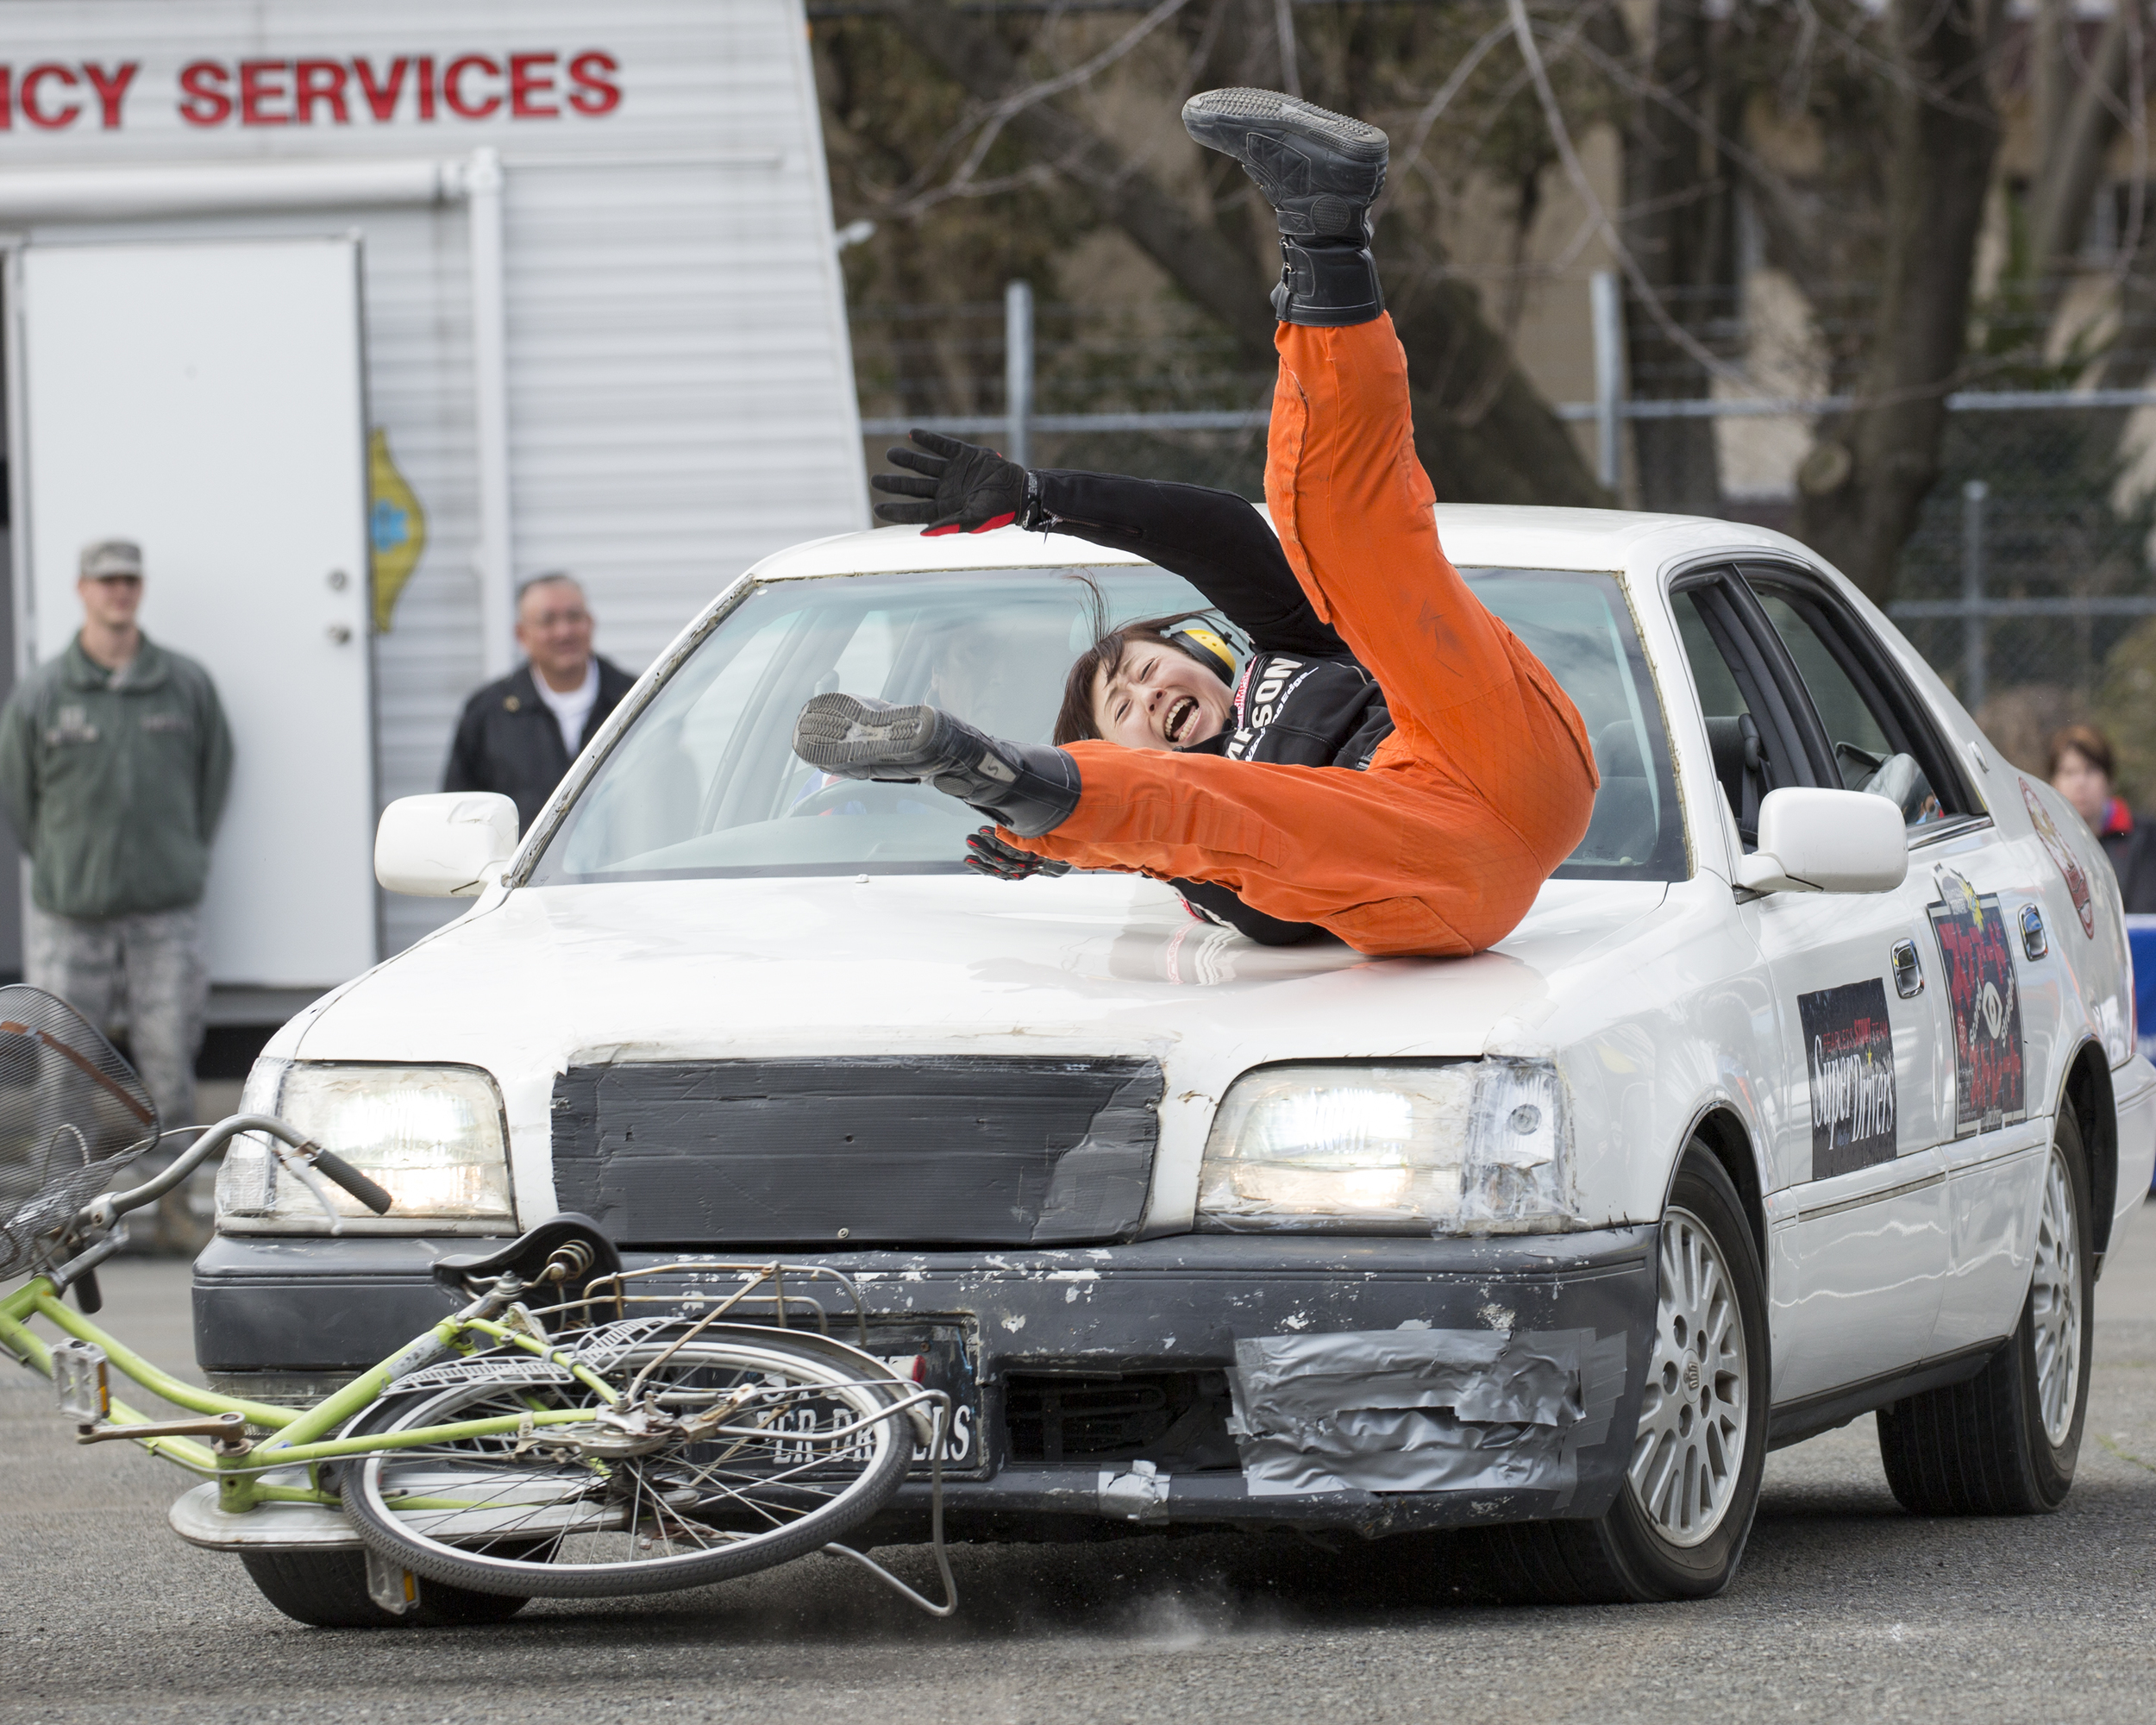 """A member from the stunt project team """"Super Drivers"""" performs a traffic safety demonstration during the safety festival at Yokota Air Base, Japan, March 6, 2015. The Fussa police station sponsored the traffic safety demonstration for Yokota residents during the festival. The event demonstrated hairy moments in car accidents. (U.S. Air Force photo by Osakabe Yasuo/Released)"""